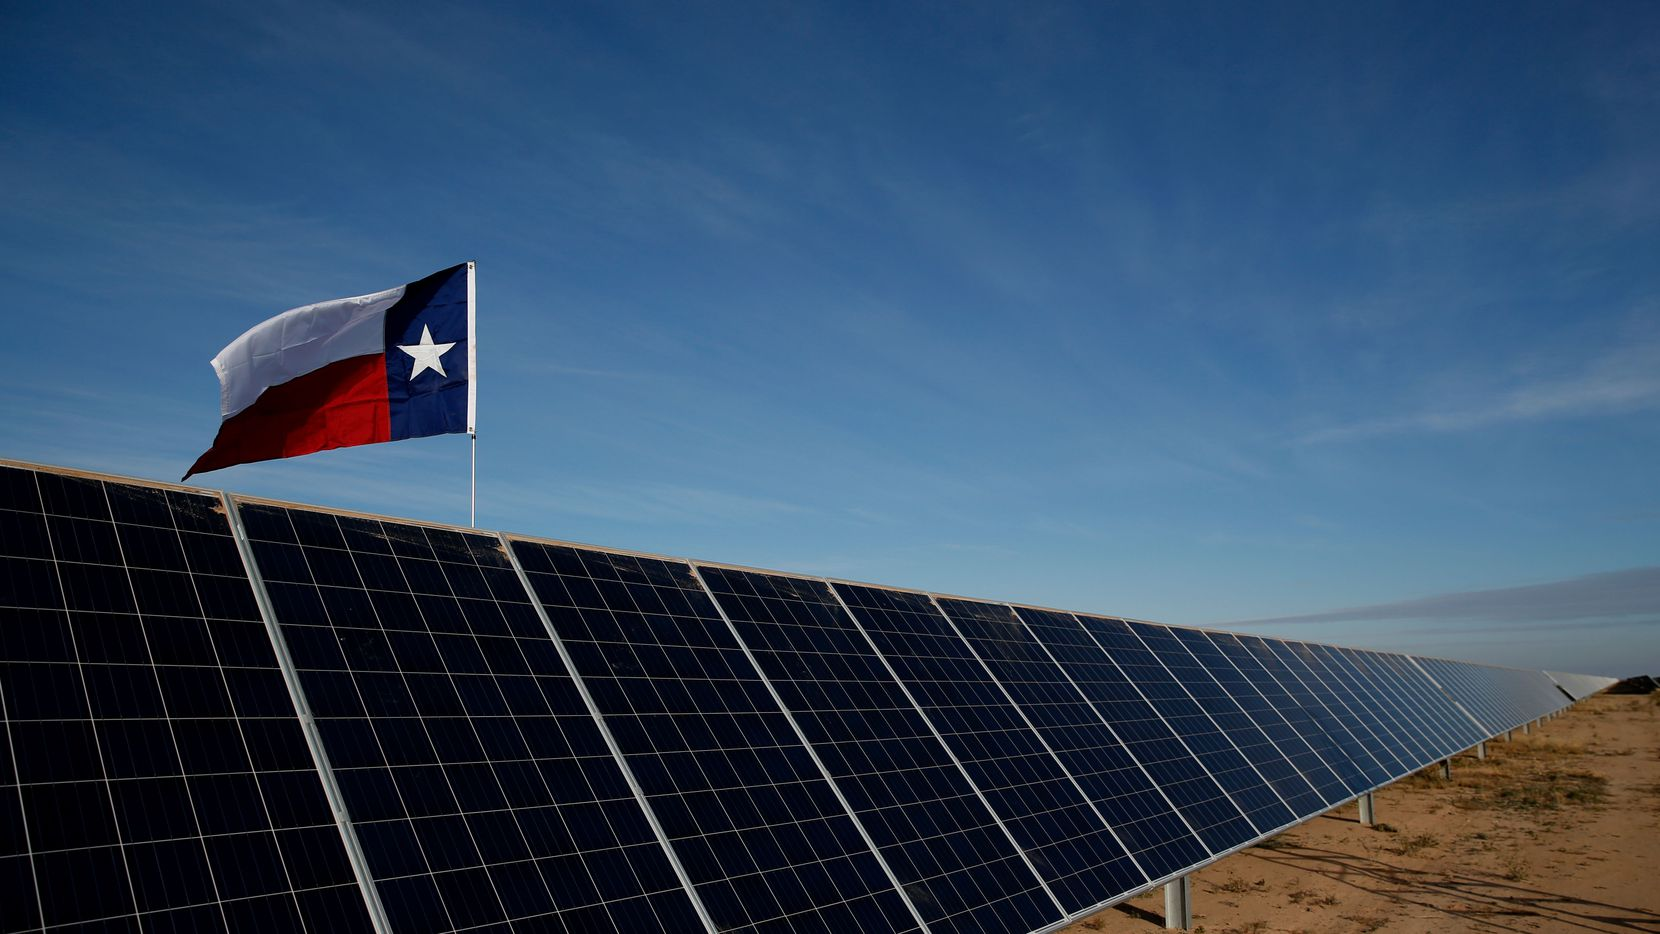 The Roserock Solar Project in Pecos County, Texas, was developed by Recurrent Energy.